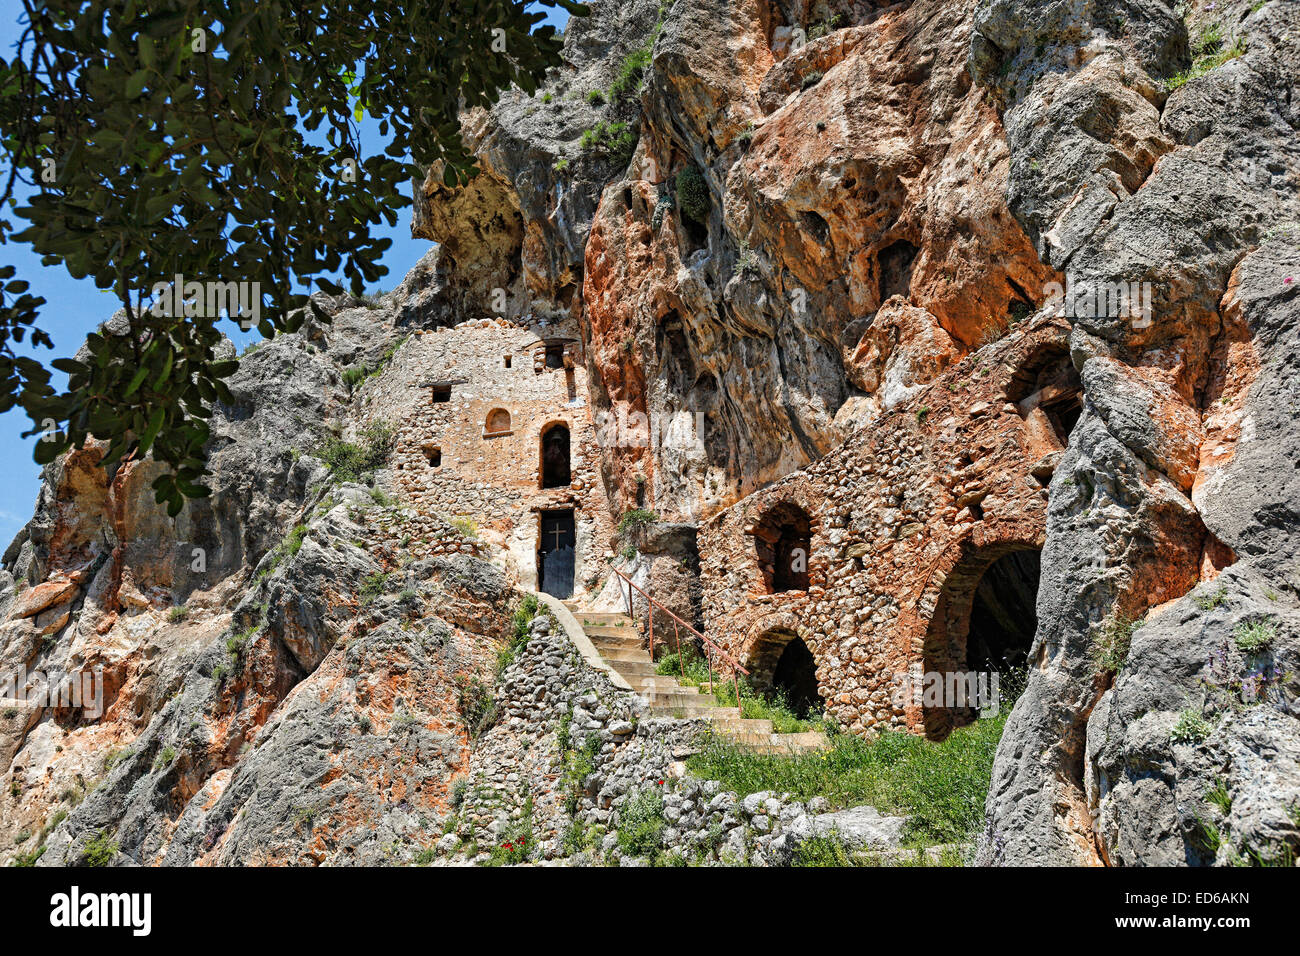 Vrontama Monastery in Laconia Peloponnese, Greece. - Stock Image